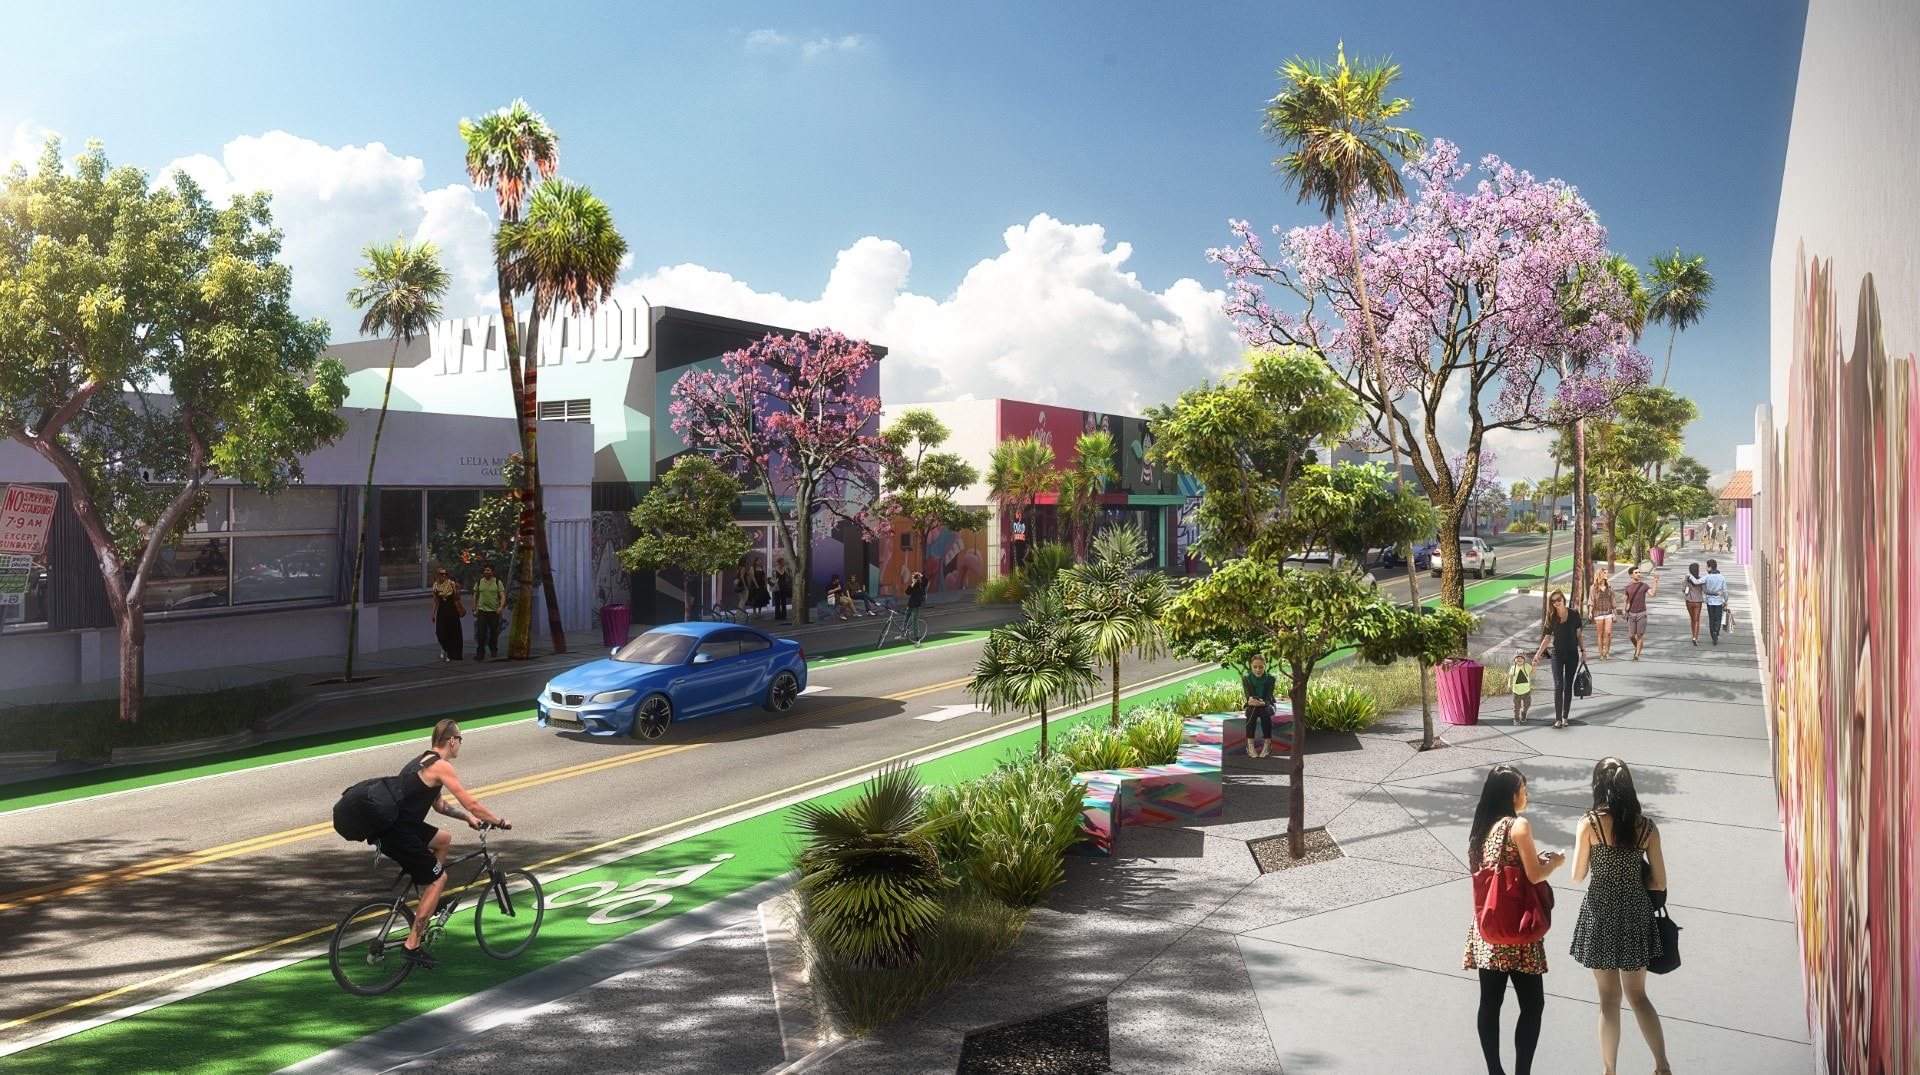 Check Out WynwoodWalks, ArquitectonicaGEO's Newly Proposed Addition To The Wynwood Streetscape